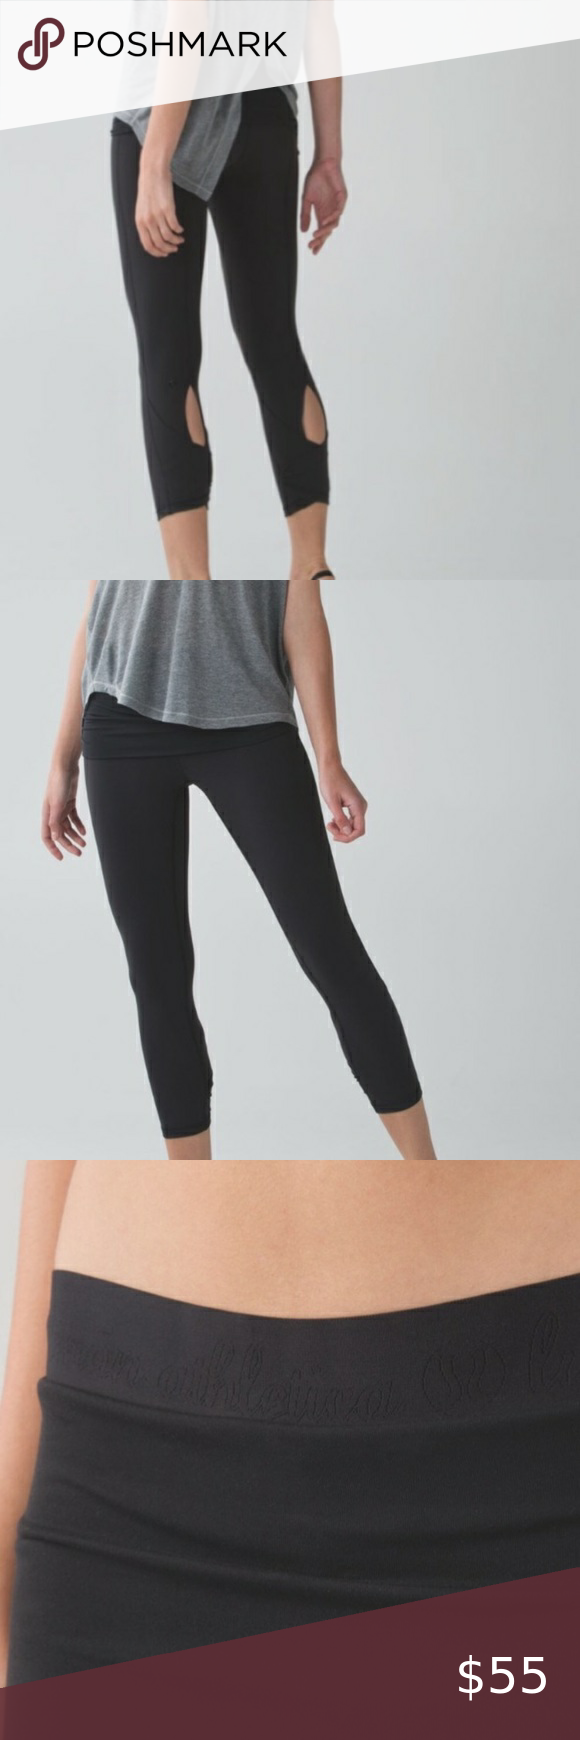 lululemon Wunder Under Pant* Dance Excellent condition- no flaws at all. No pull tag- size 6. Details in last pic! z#0125 lululemon athletica Pants Leggings